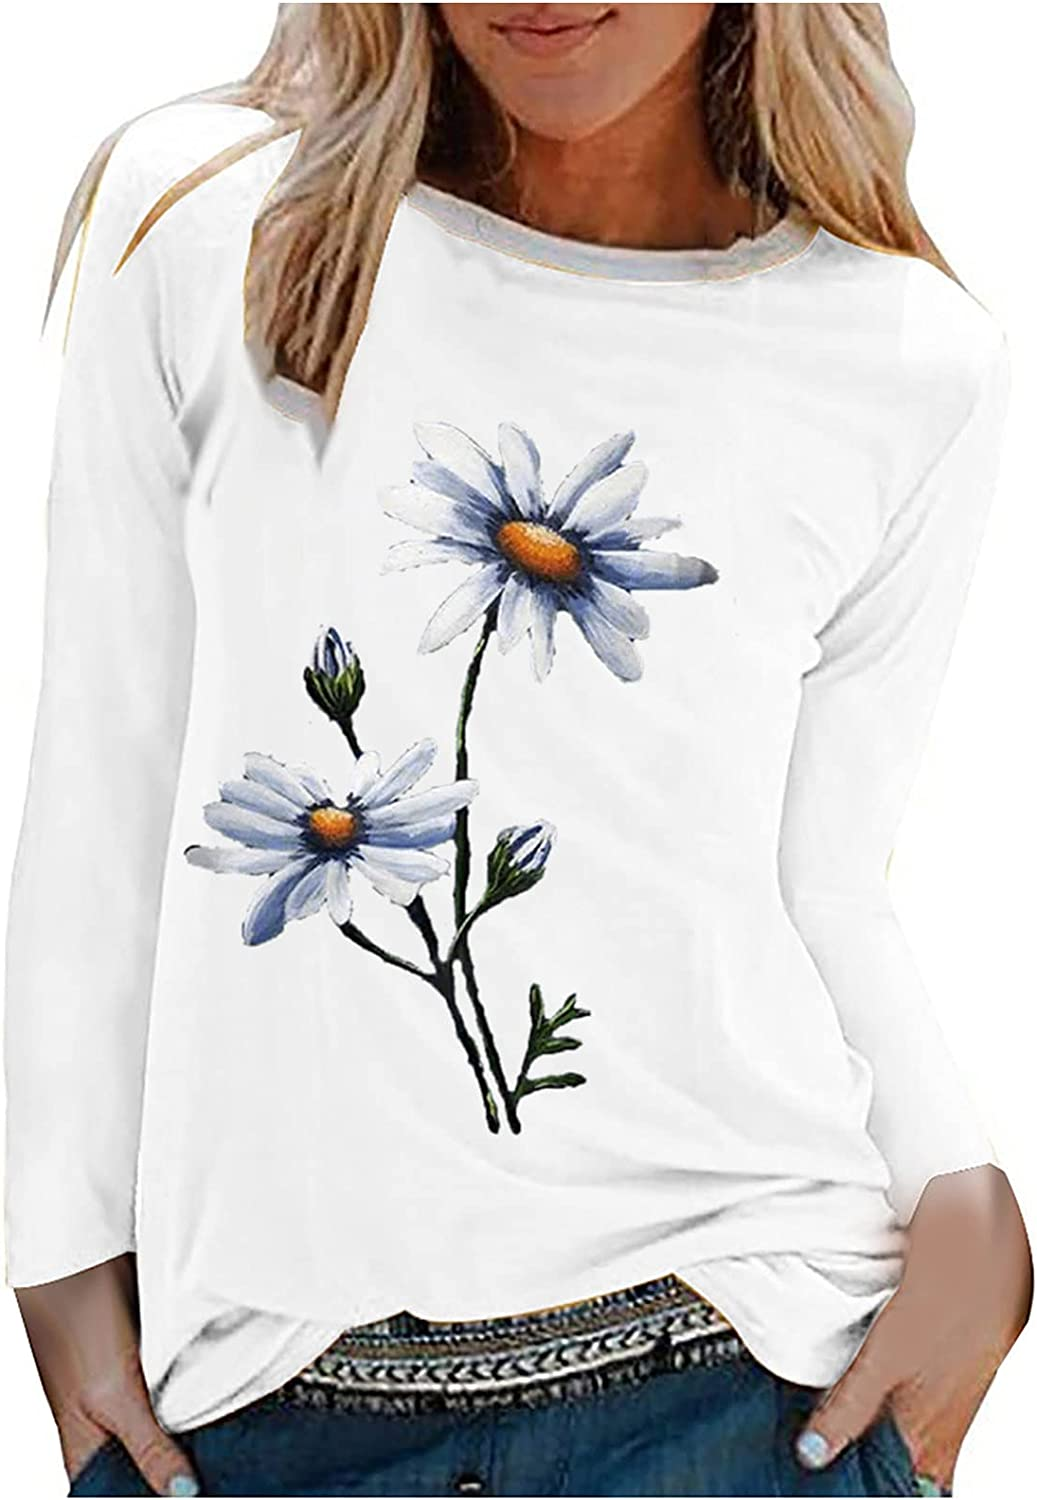 Women's Summer Casual Long Sleeve Blouse Floral Printing O-Neck Shirts Tops Loose Comfortable Tunic Tee